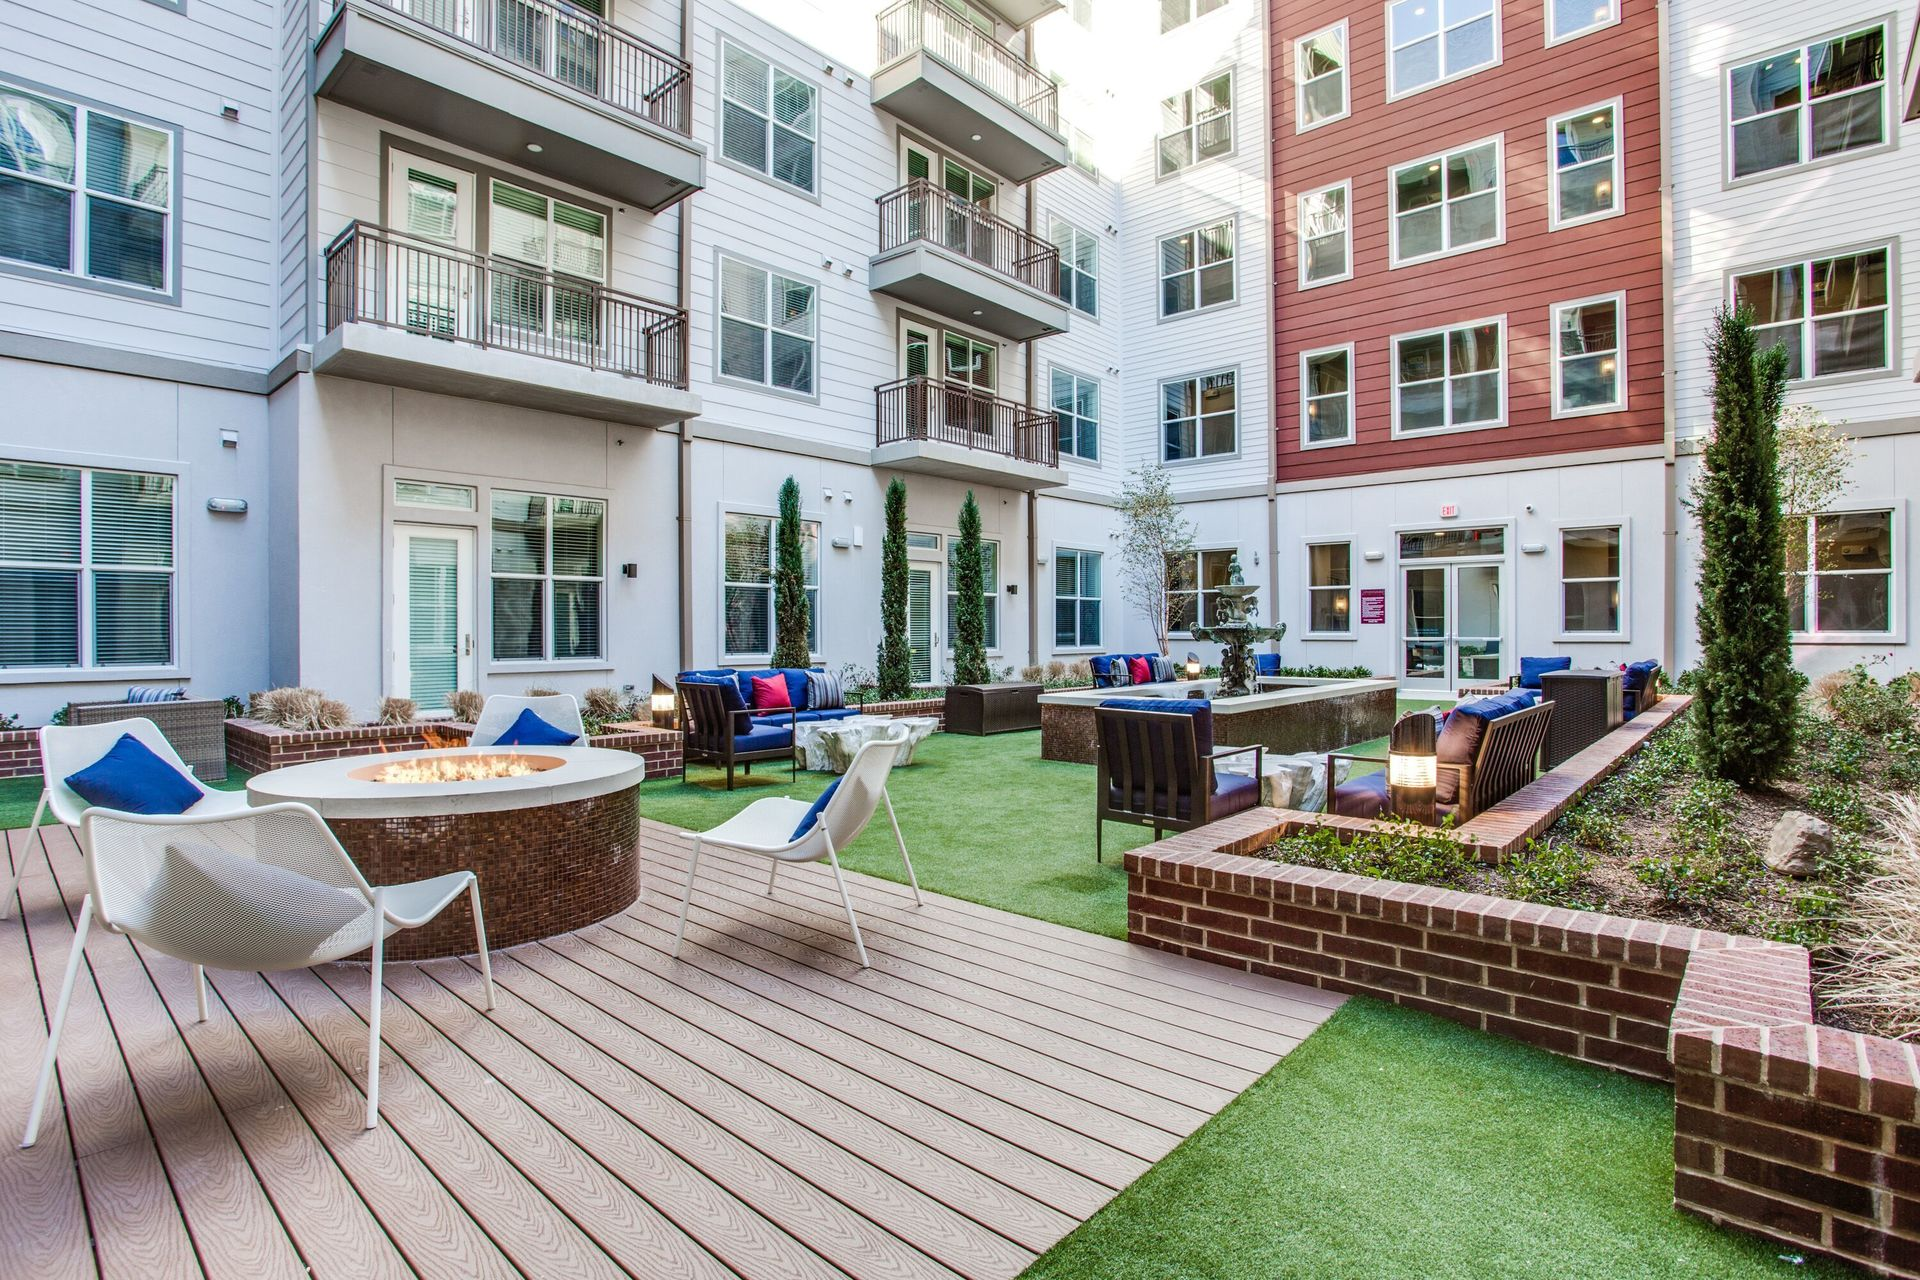 Intimately landscaped resident courtyard, fire pit, outdoor kitchen, various lounge areas and fountain feature at this luxury apartment building located in Dallas, TX, by Hensely Lamkin Rachel.